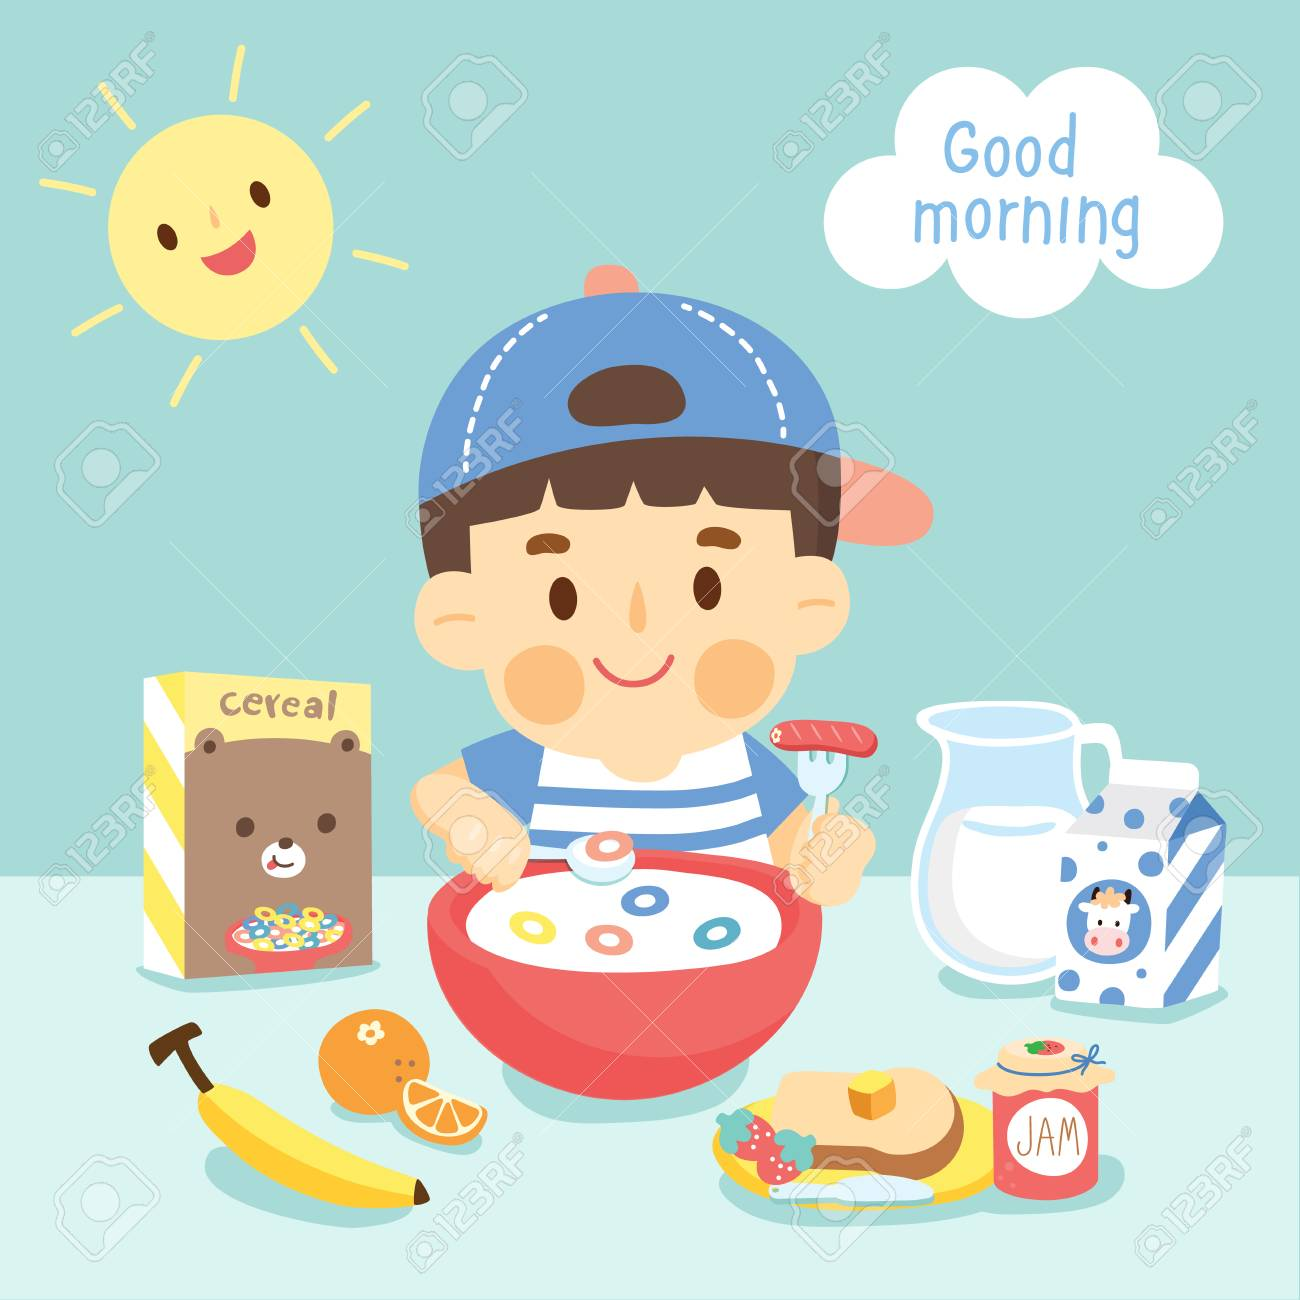 boy eating breakfast royalty free cliparts, vectors, and stock